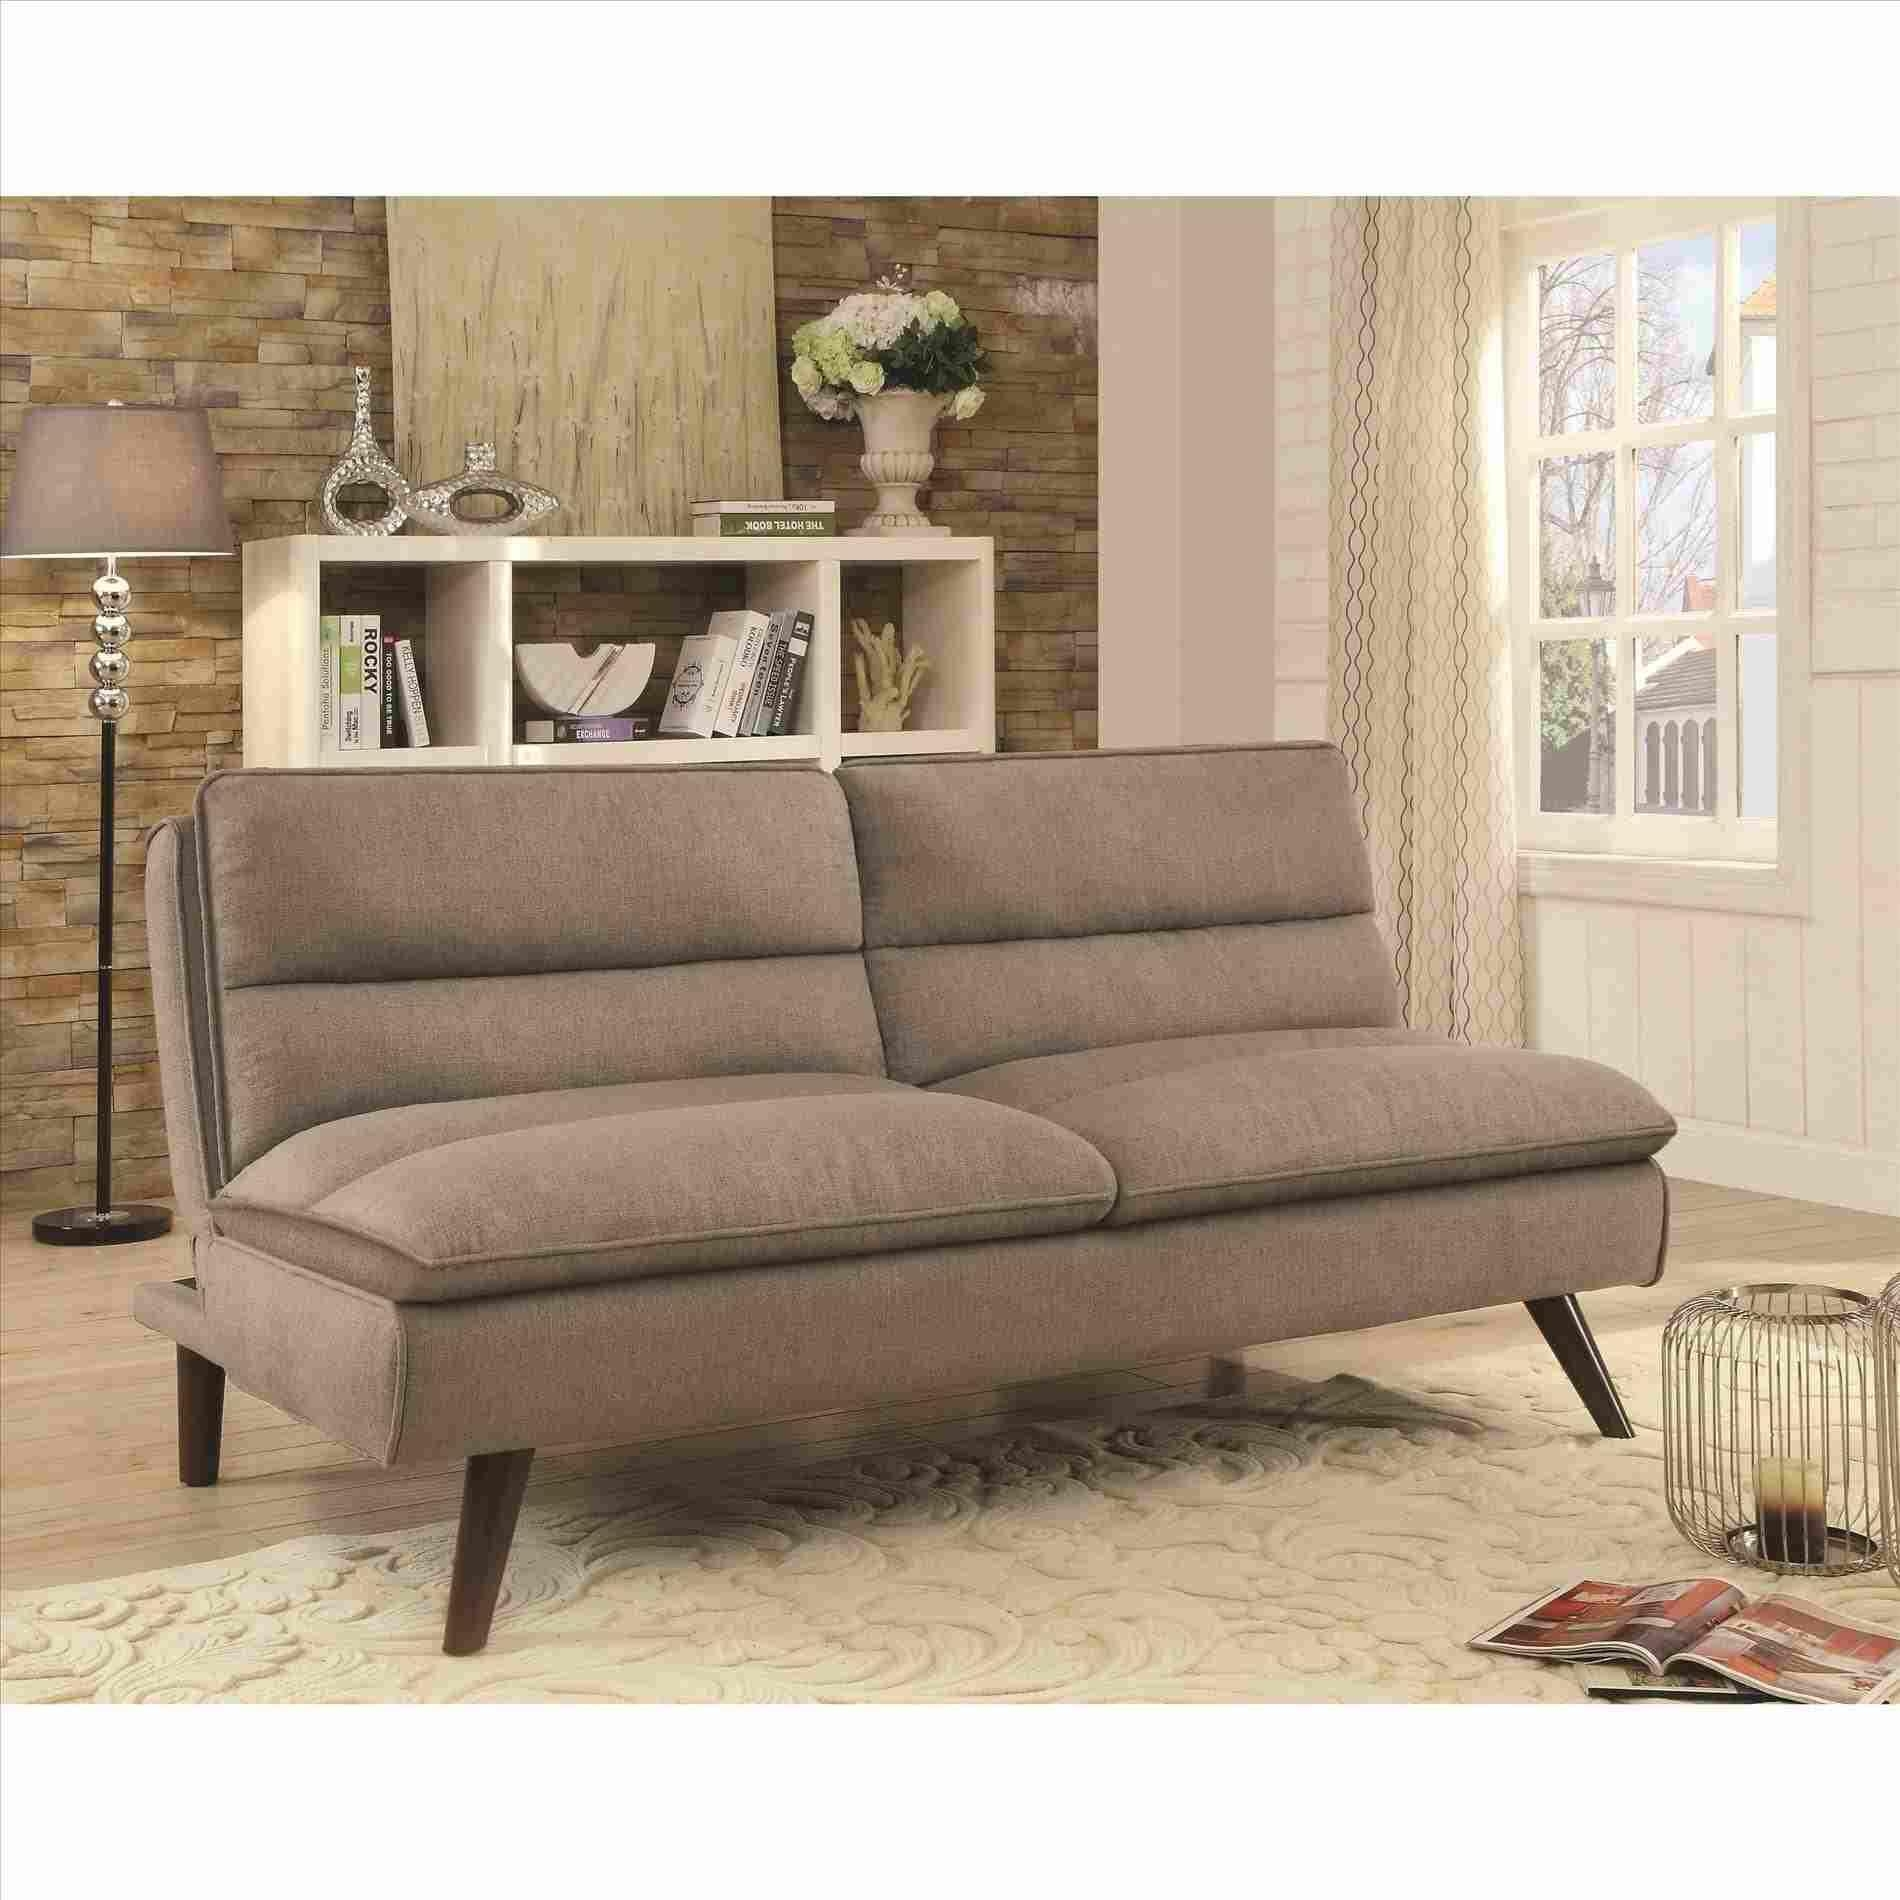 Coaster Futon Sofa Bed | Sofa And Chair Information In Coaster Futon Sofa Beds (Image 7 of 20)